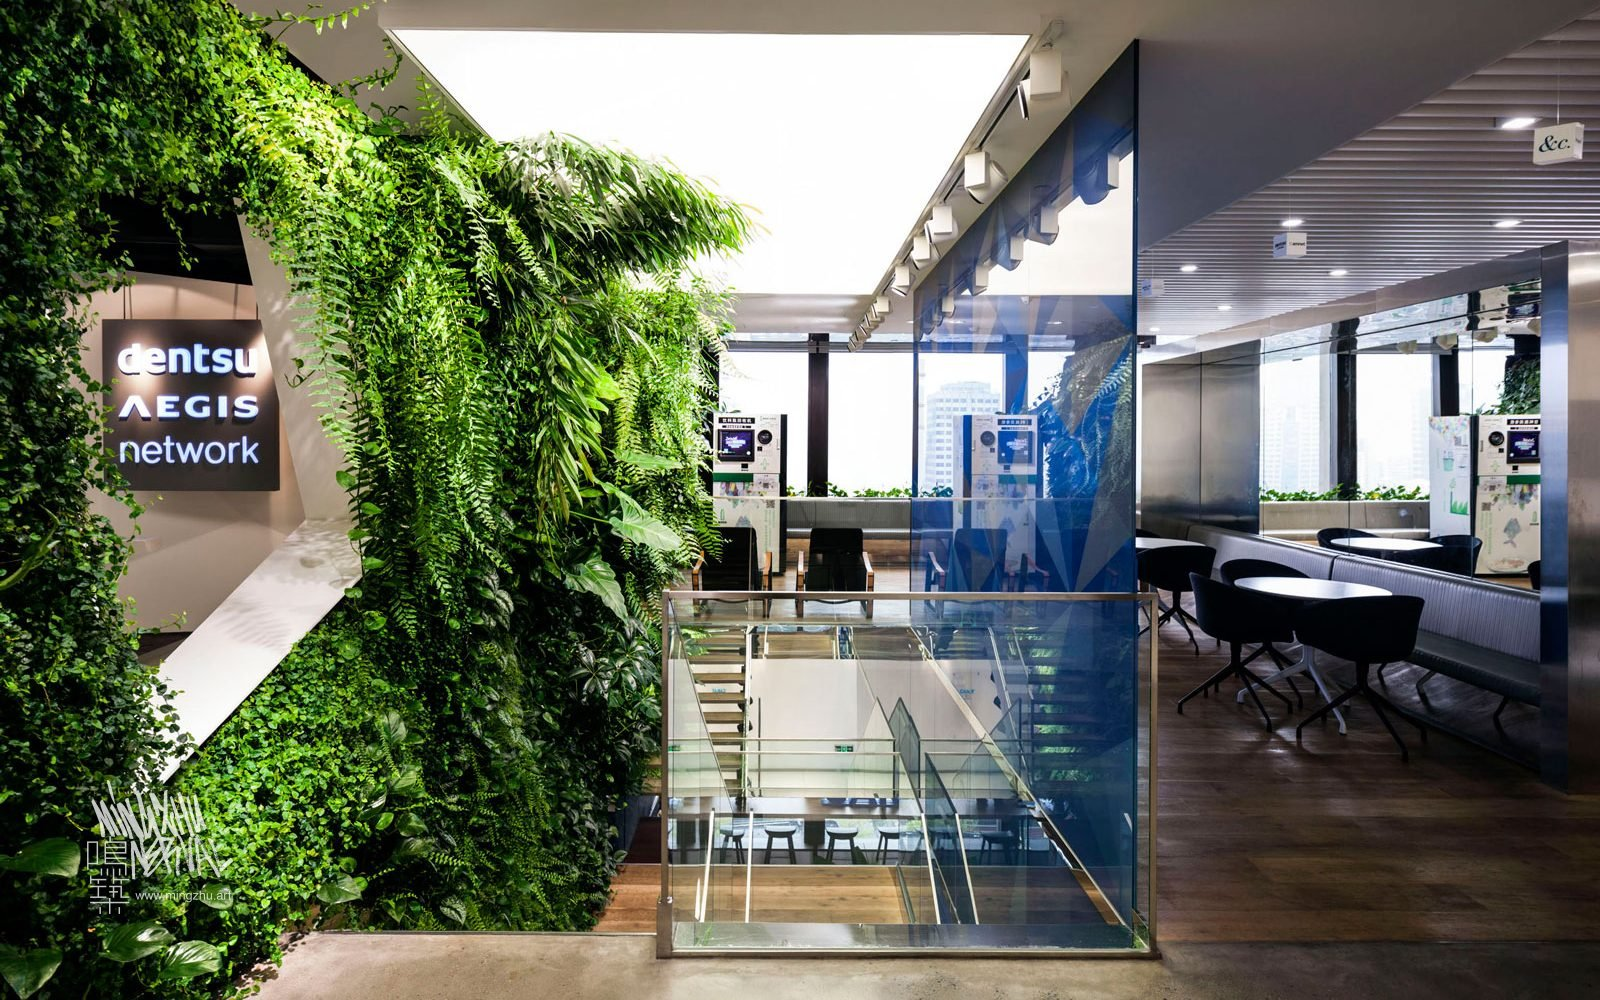 At Mingzhu Nerval, we thrive at creating the most beautiful vertical gardens in the world. For Dentsu Aegis, we created a terrific living wall design - Shanghai, 2016.